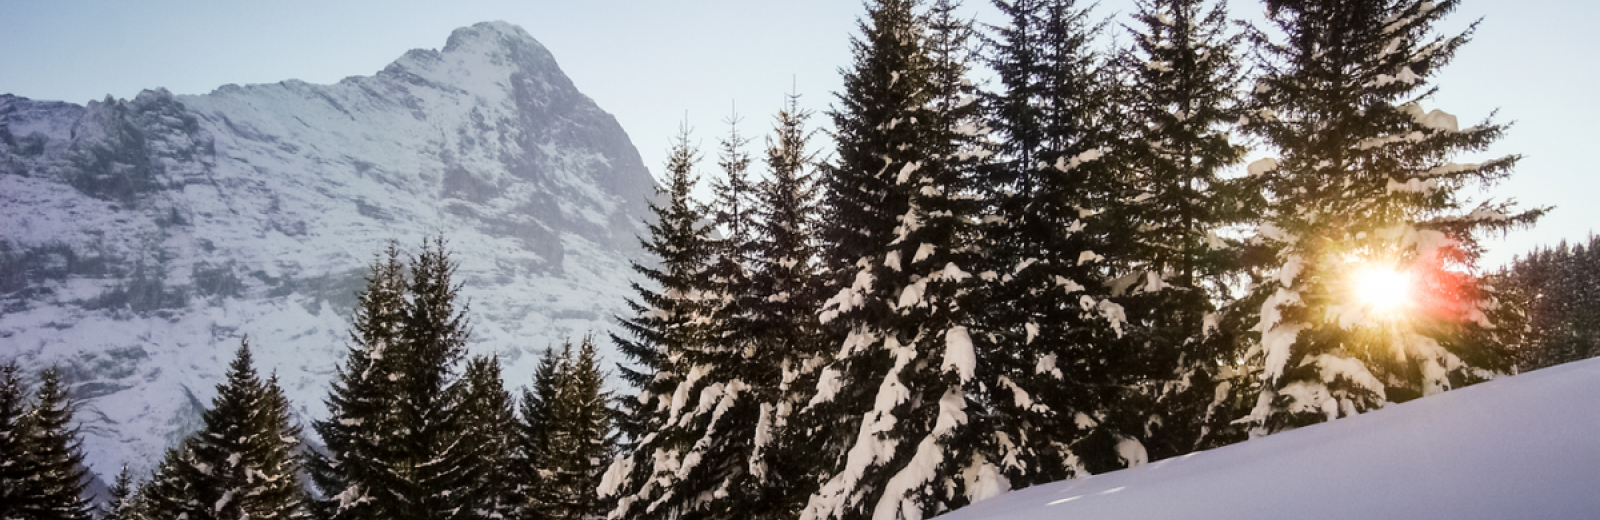 1.	Snow-capped woods in Grindelwald with the Eiger in the background. © FOEN